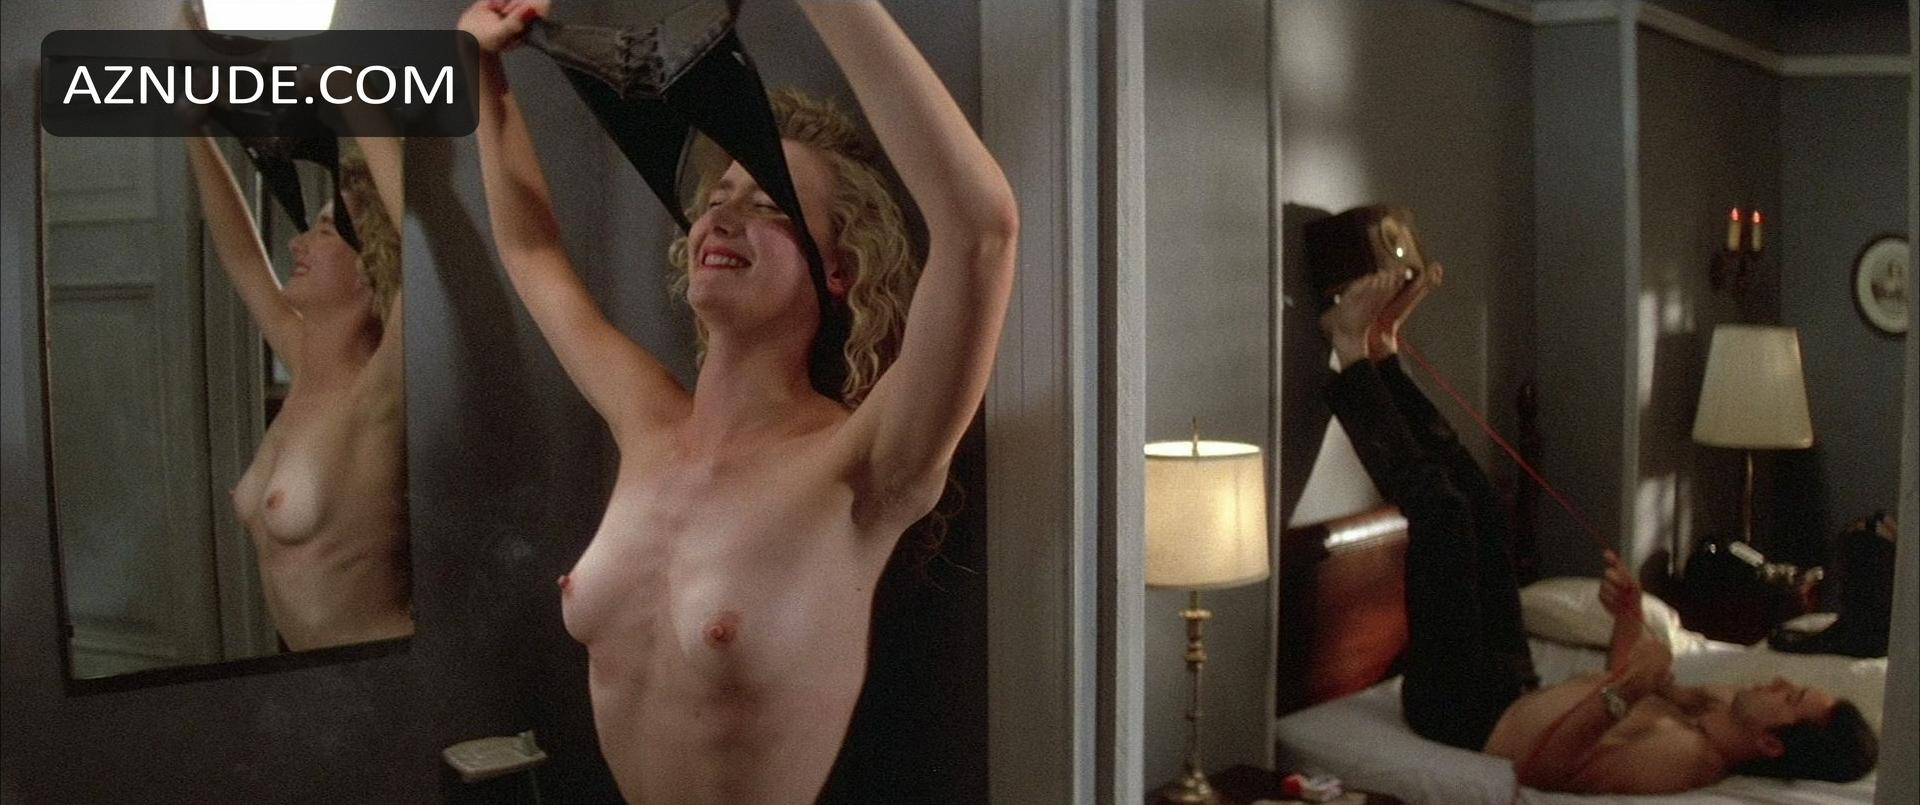 laura dern nude pic